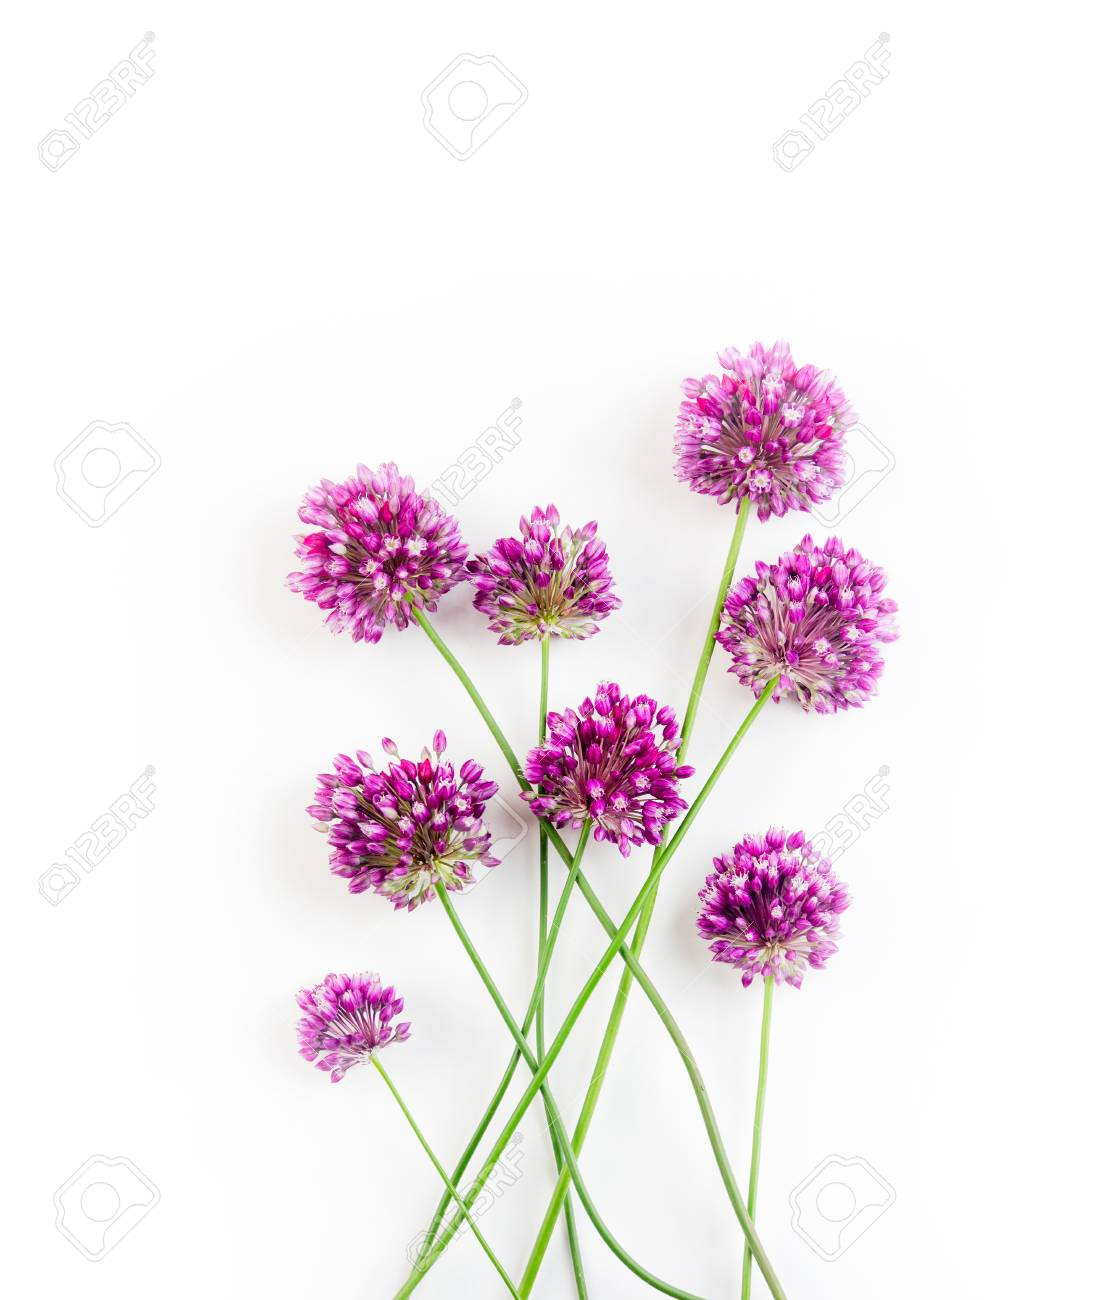 The Flowers Of Allium Against A White Background Stock Photo